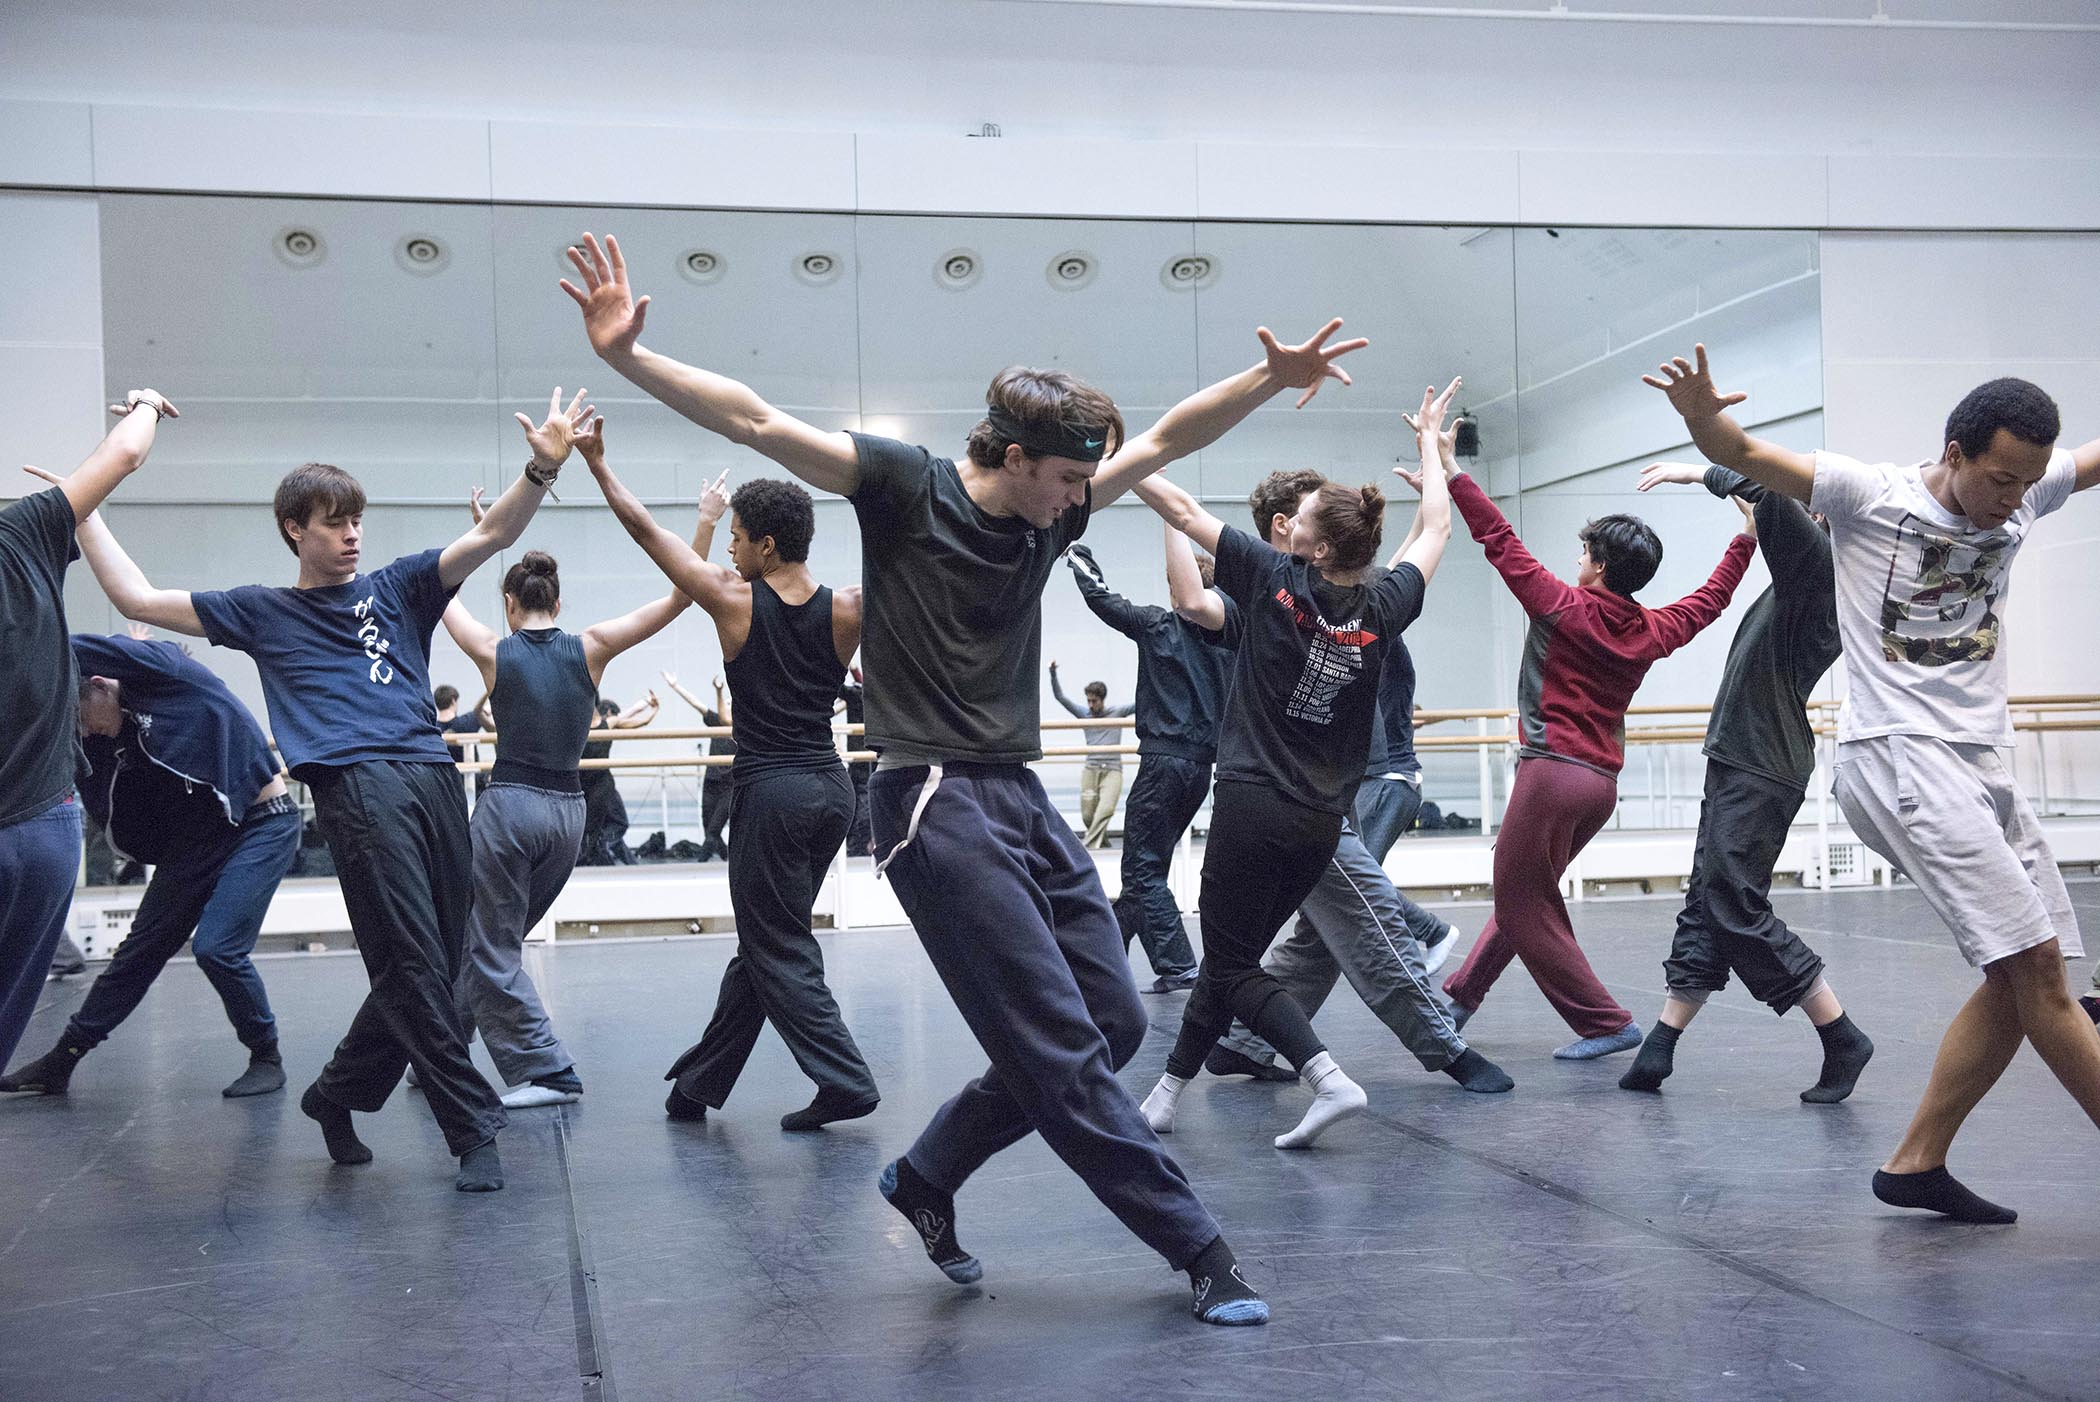 Watch: Hofesh Shechter in rehearsals with The Royal Ballet